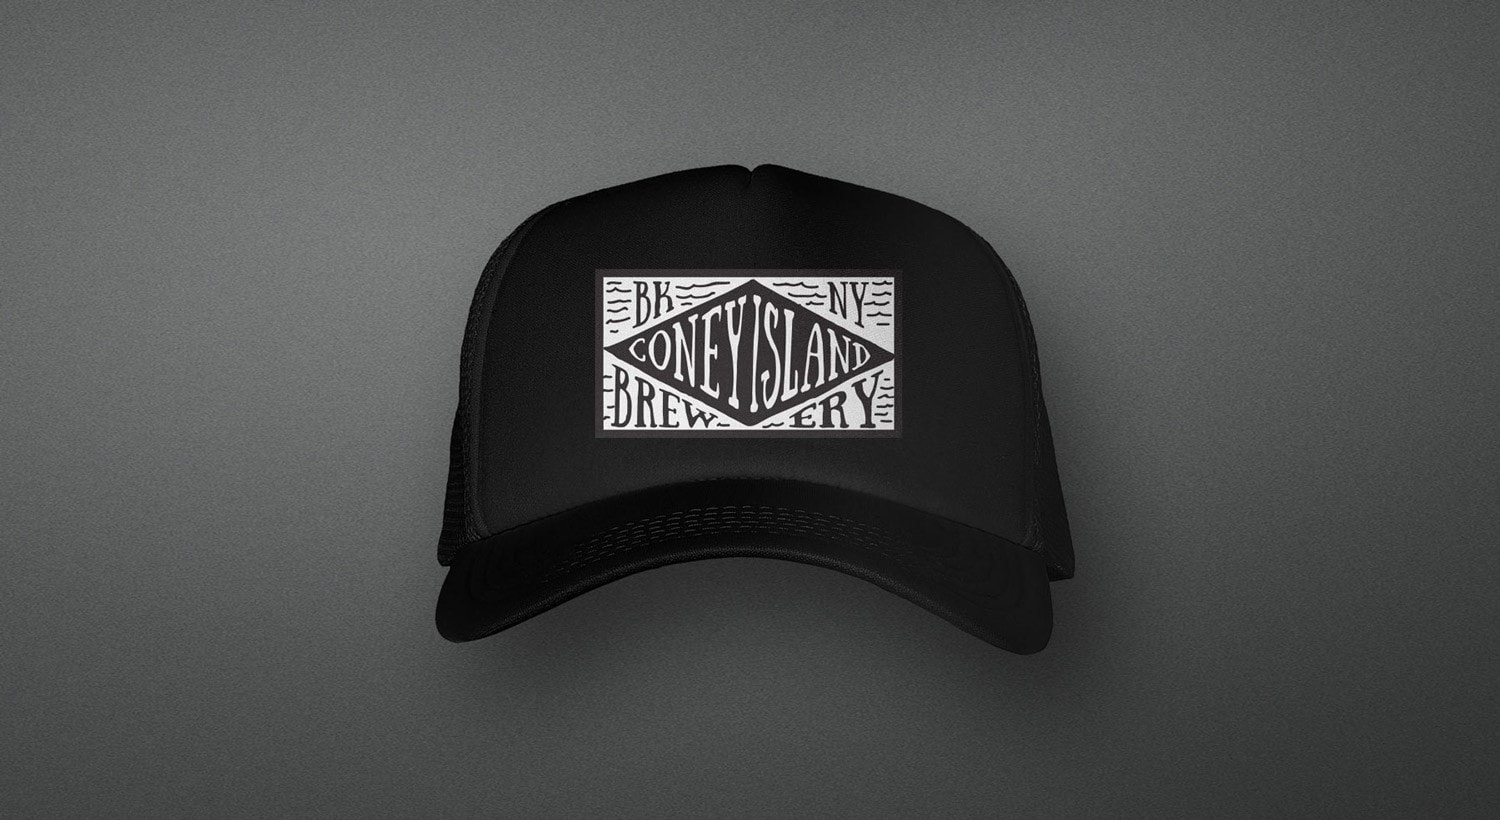 Brewery hat design by Clutch Creative Co. Burlington, VT graphic design company.